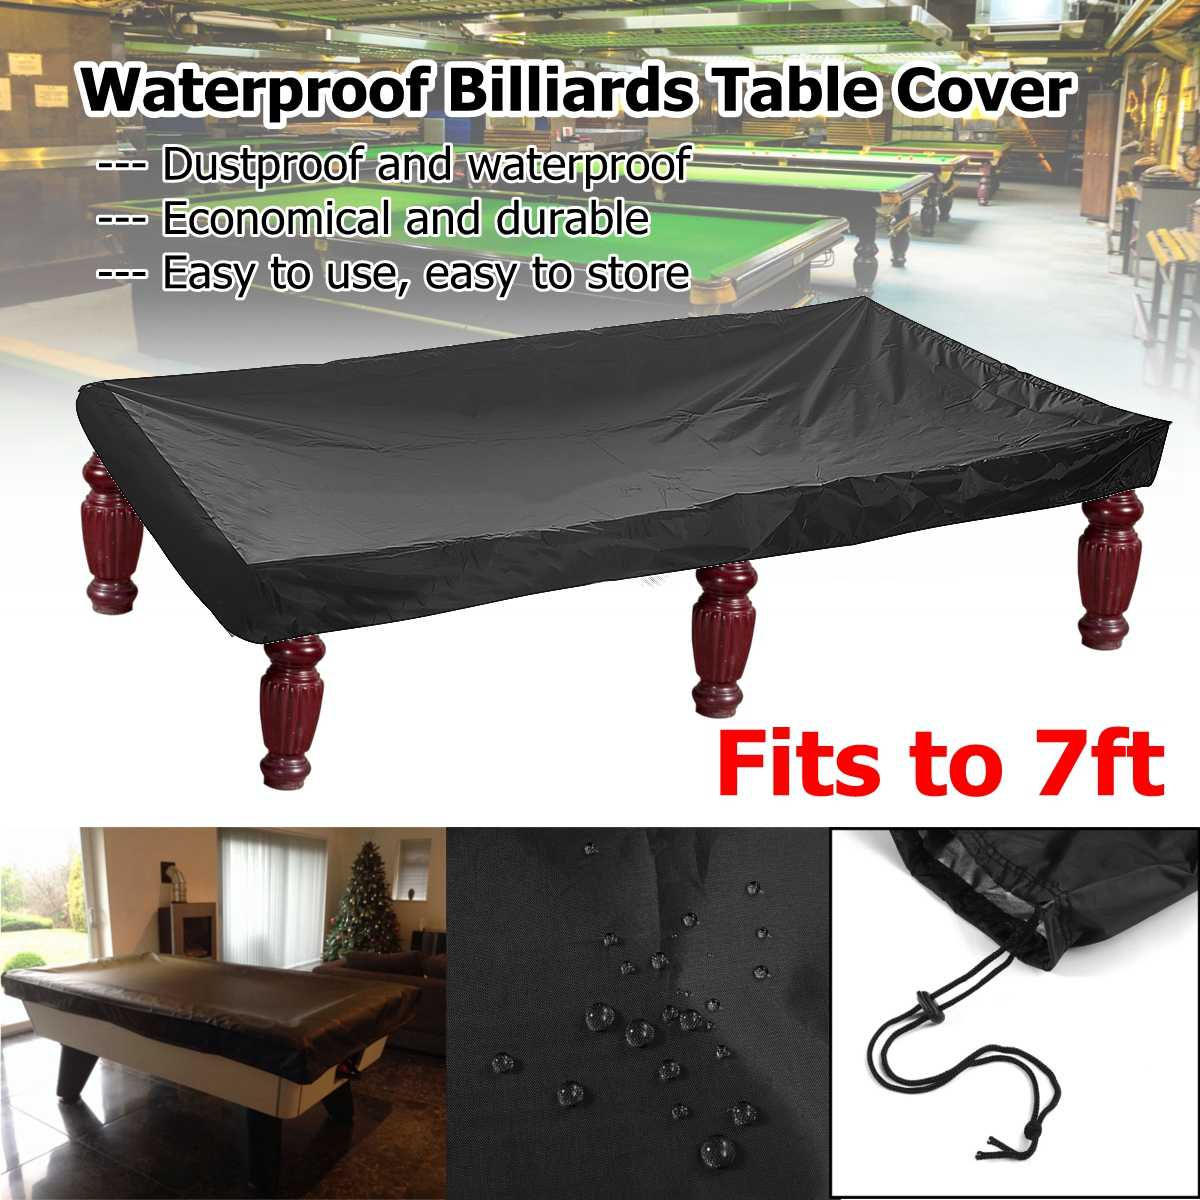 215x125x14cm PVC Table Billiard Cover Feet Billiard Tennis Table Cover R.ips Resistant Oxford Pool Table Billiard Cover